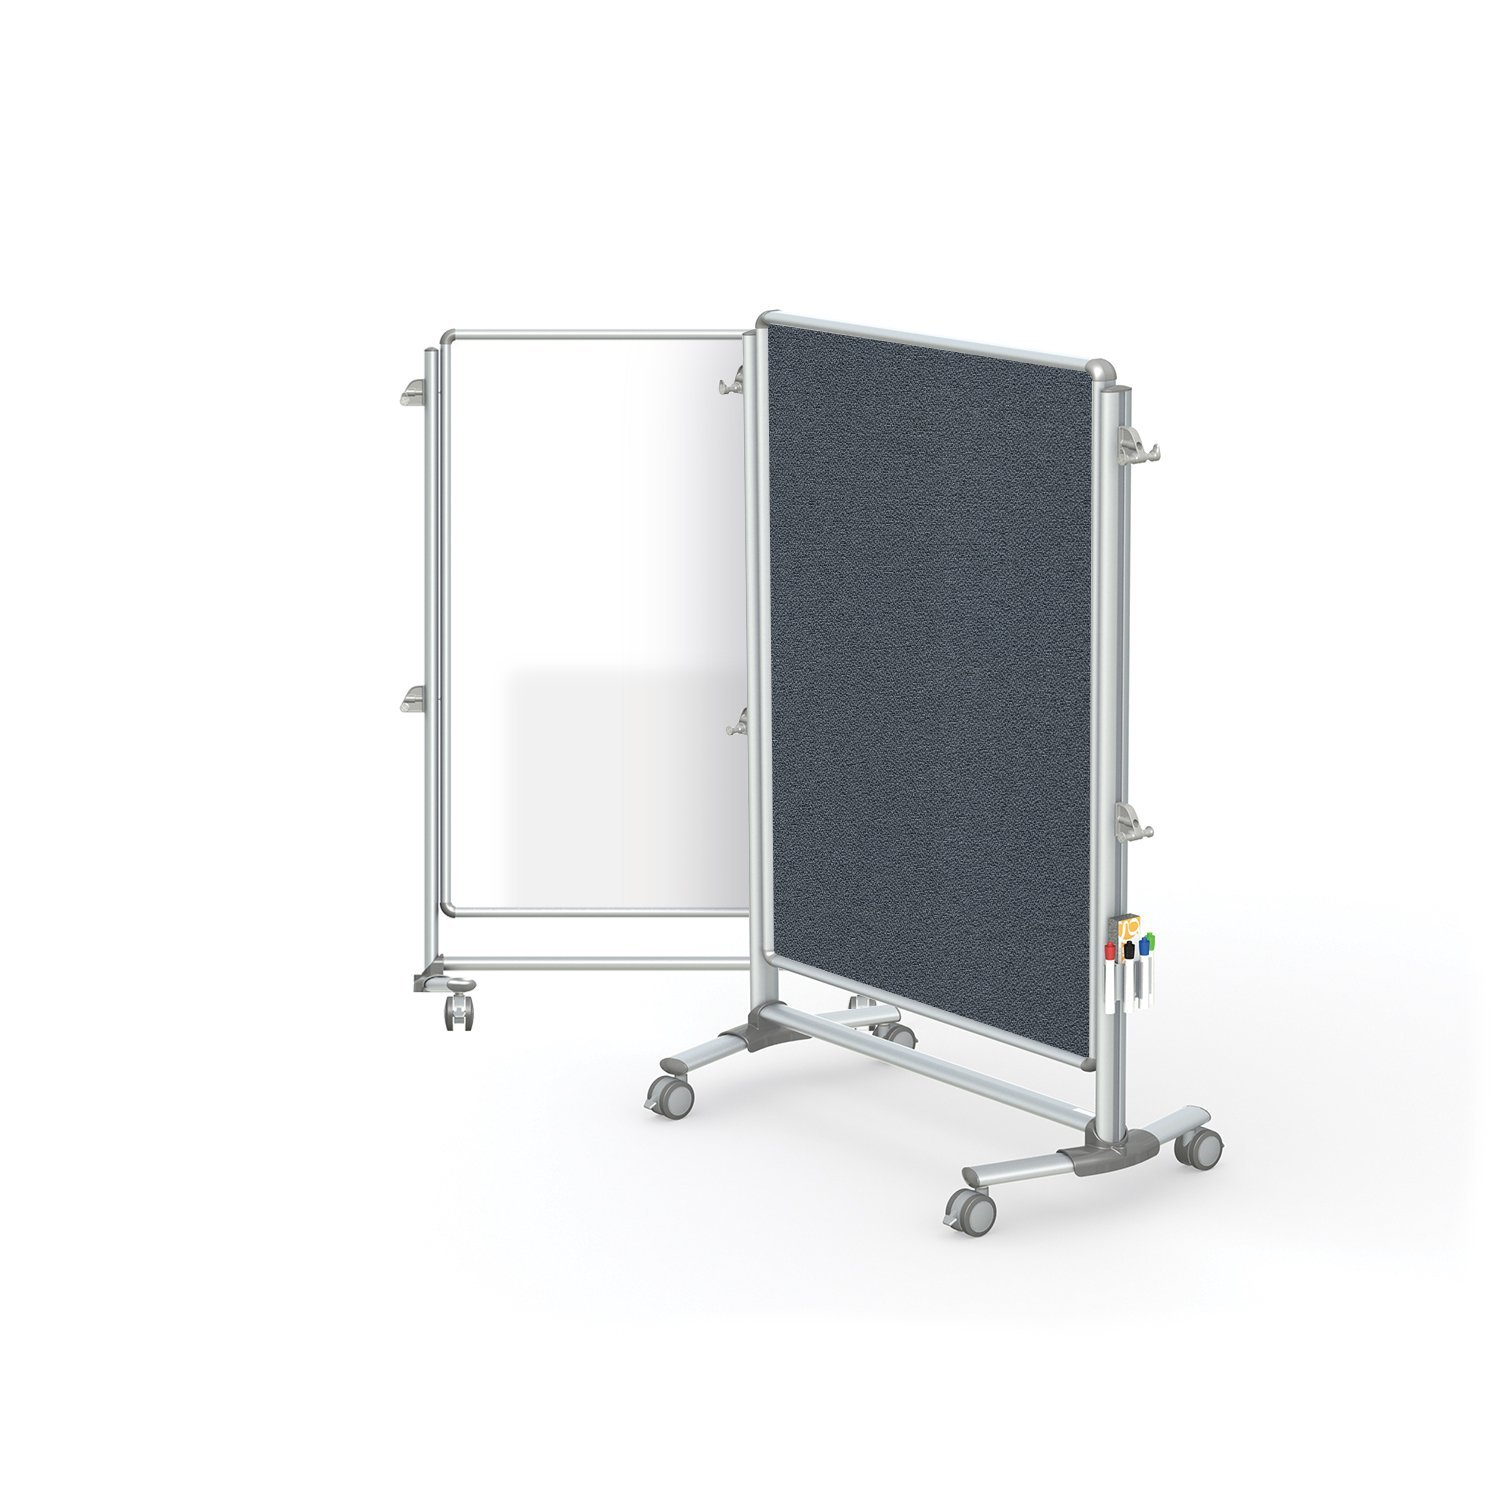 "Ghent 57-3/8"" x 40-3/8"" Nexus Jr. Partition, Magnetic Whiteboard/Bulletin Board, Double-Sided (NEX223MFP-91)"